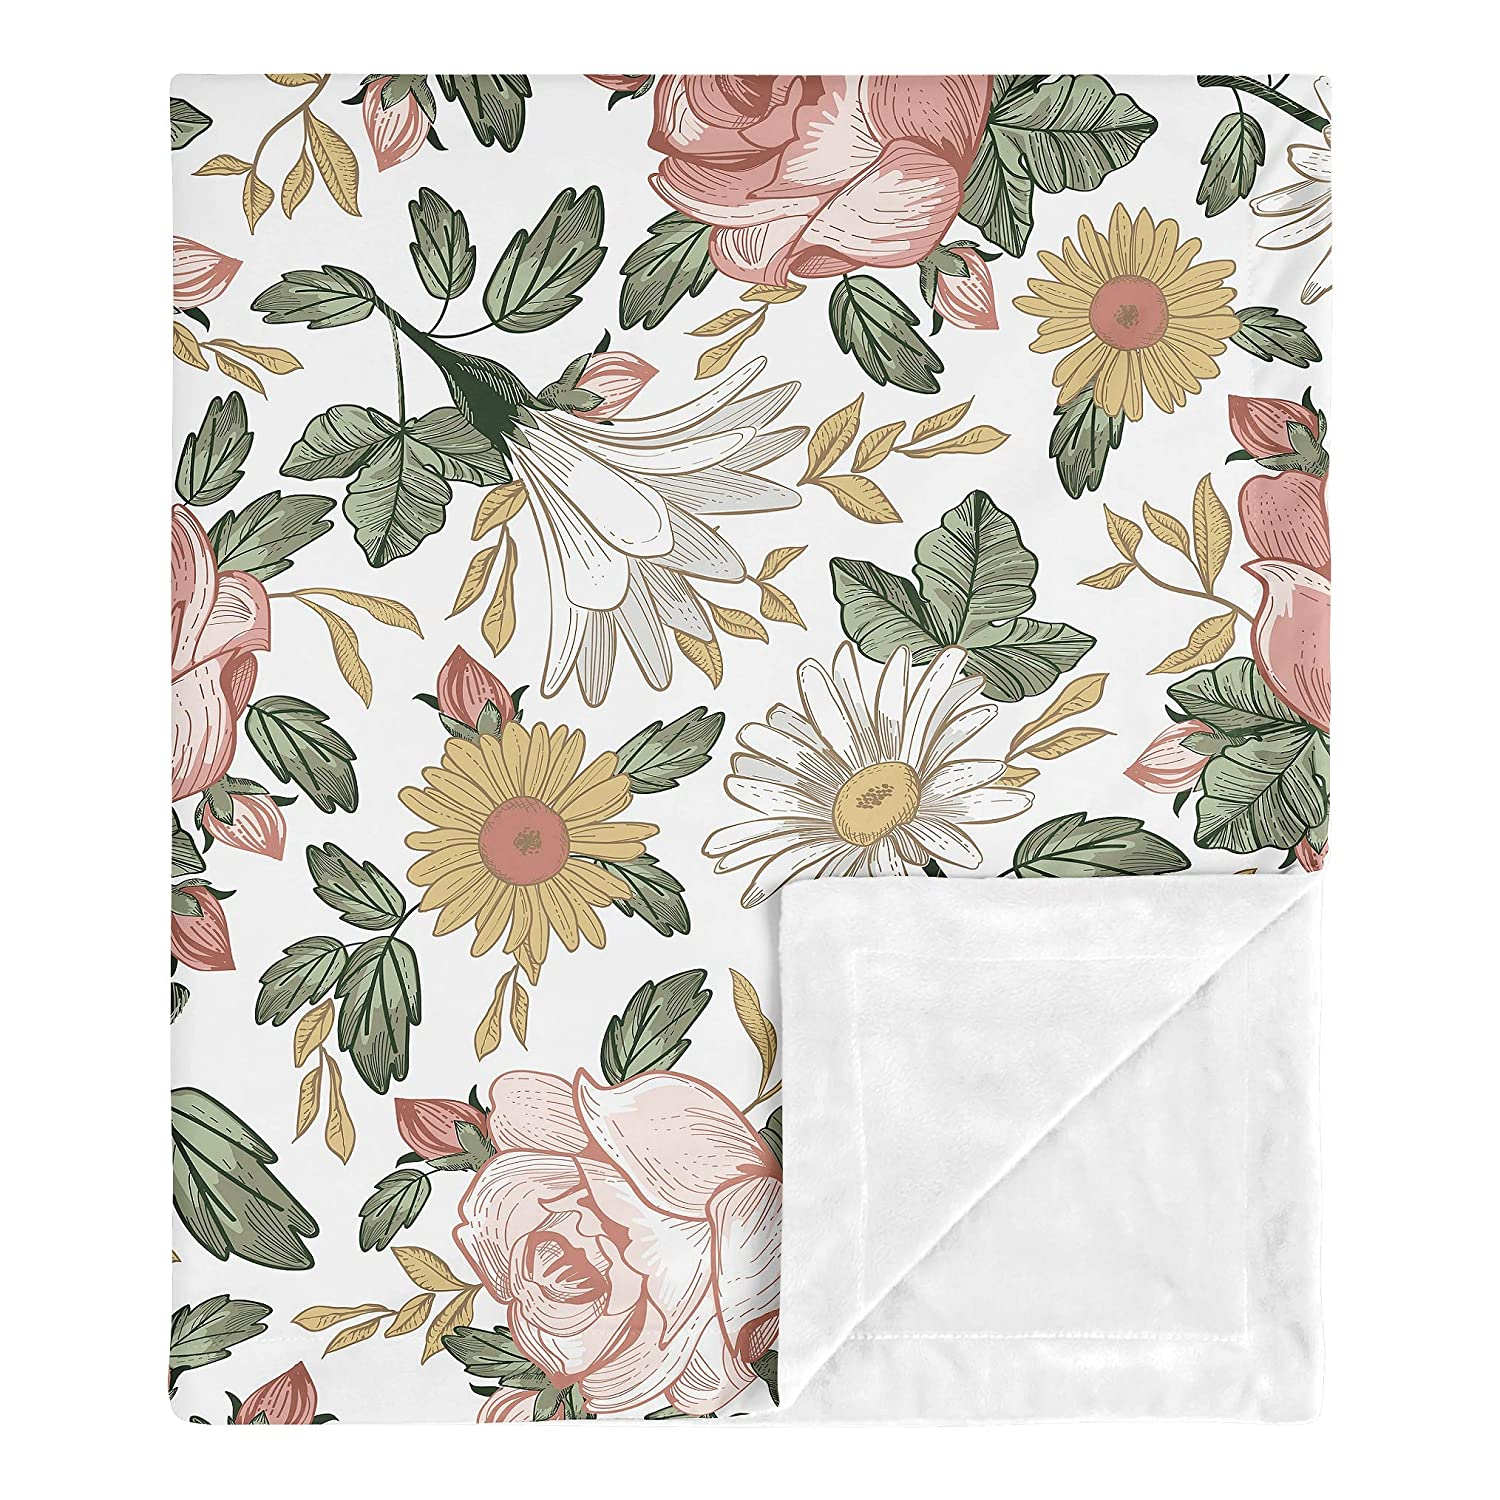 Sweet Jojo Designs Vintage Floral Baby Girl Receiving Security Swaddle Blanket for Newborn or Toddler Nursery Car Seat Stroller Soft Minky - Pink Yellow Green Boho Shabby Chic Rose Flower Farmhouse